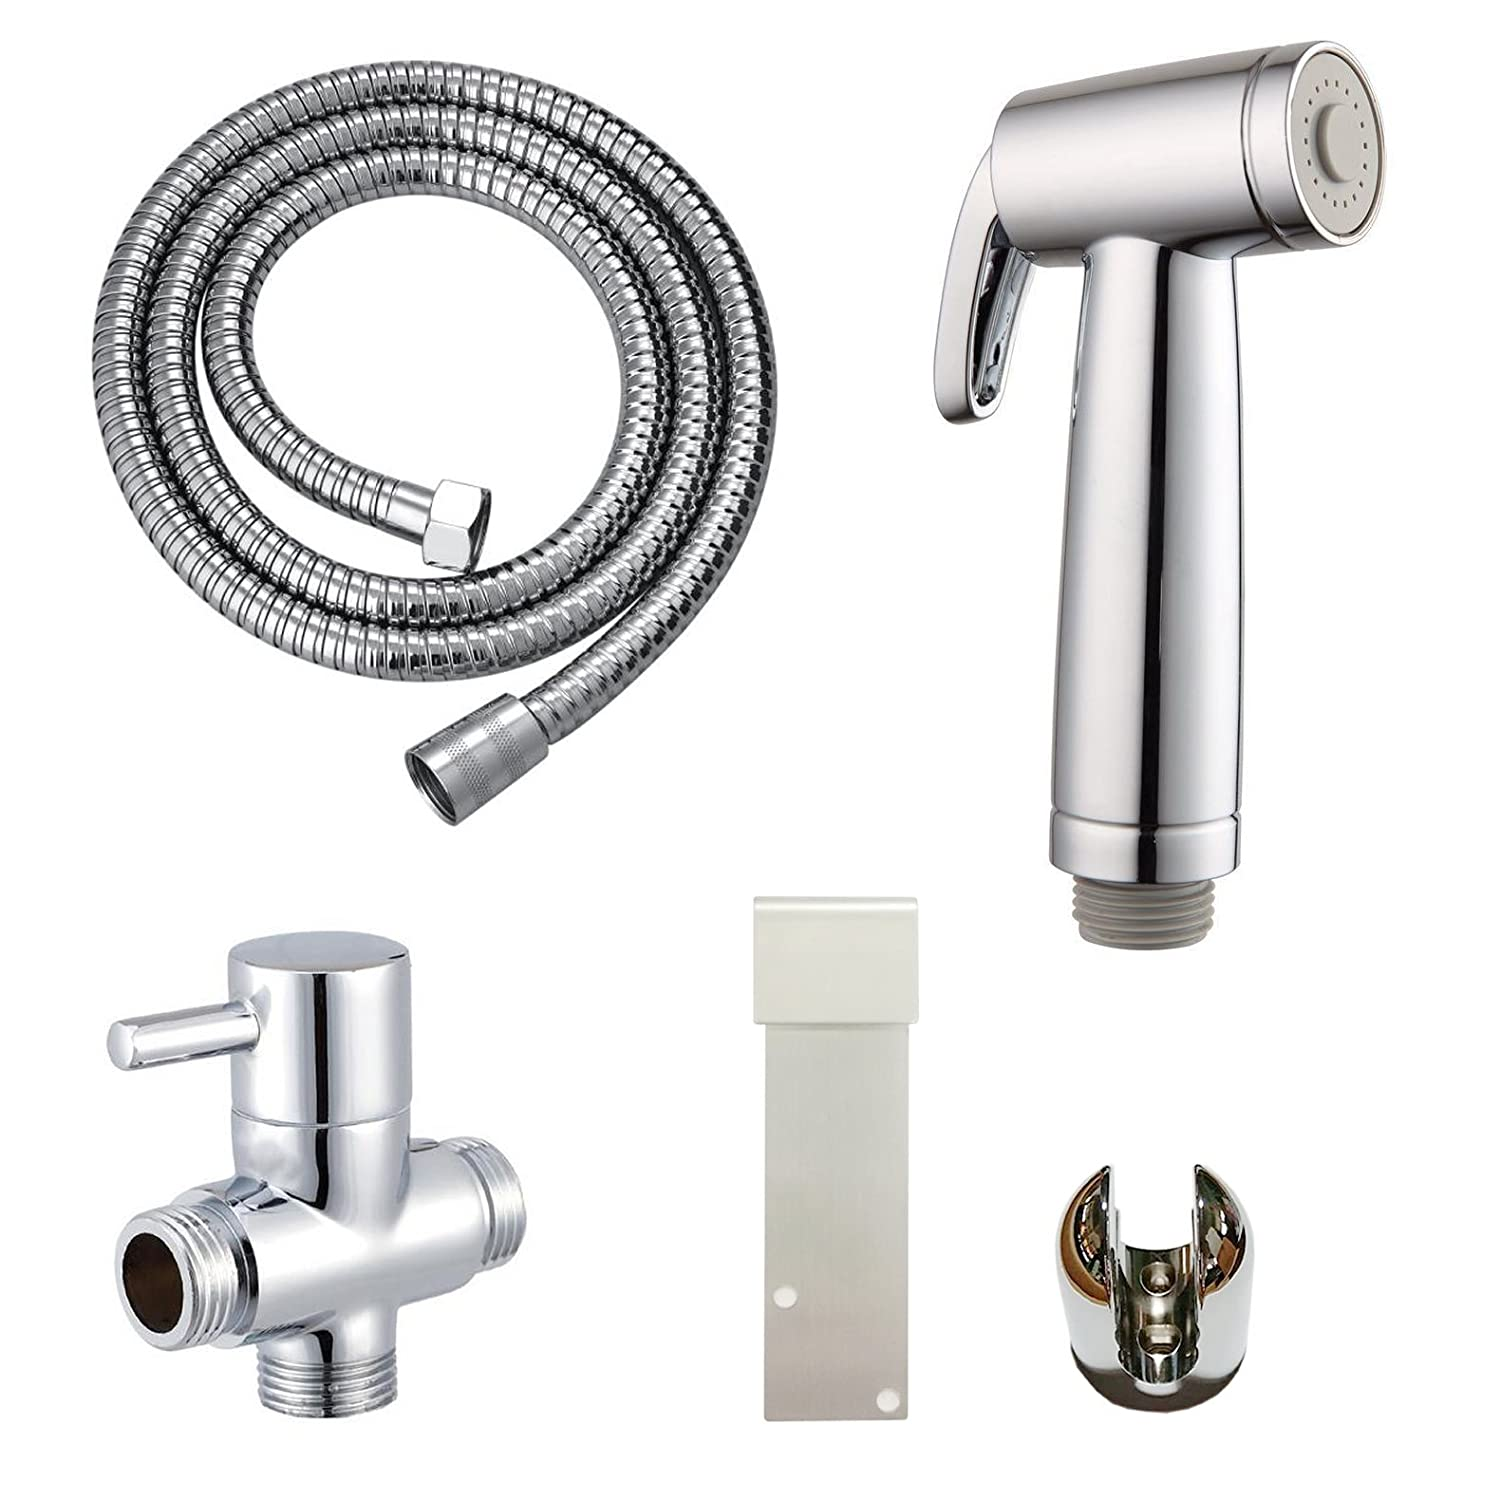 Home Garden Toilet Handheld Bidet Sprayer With Shut Off Valve Hose And Bracket Holder Attach Toilet Bidet Attachments Labmotion Com Br